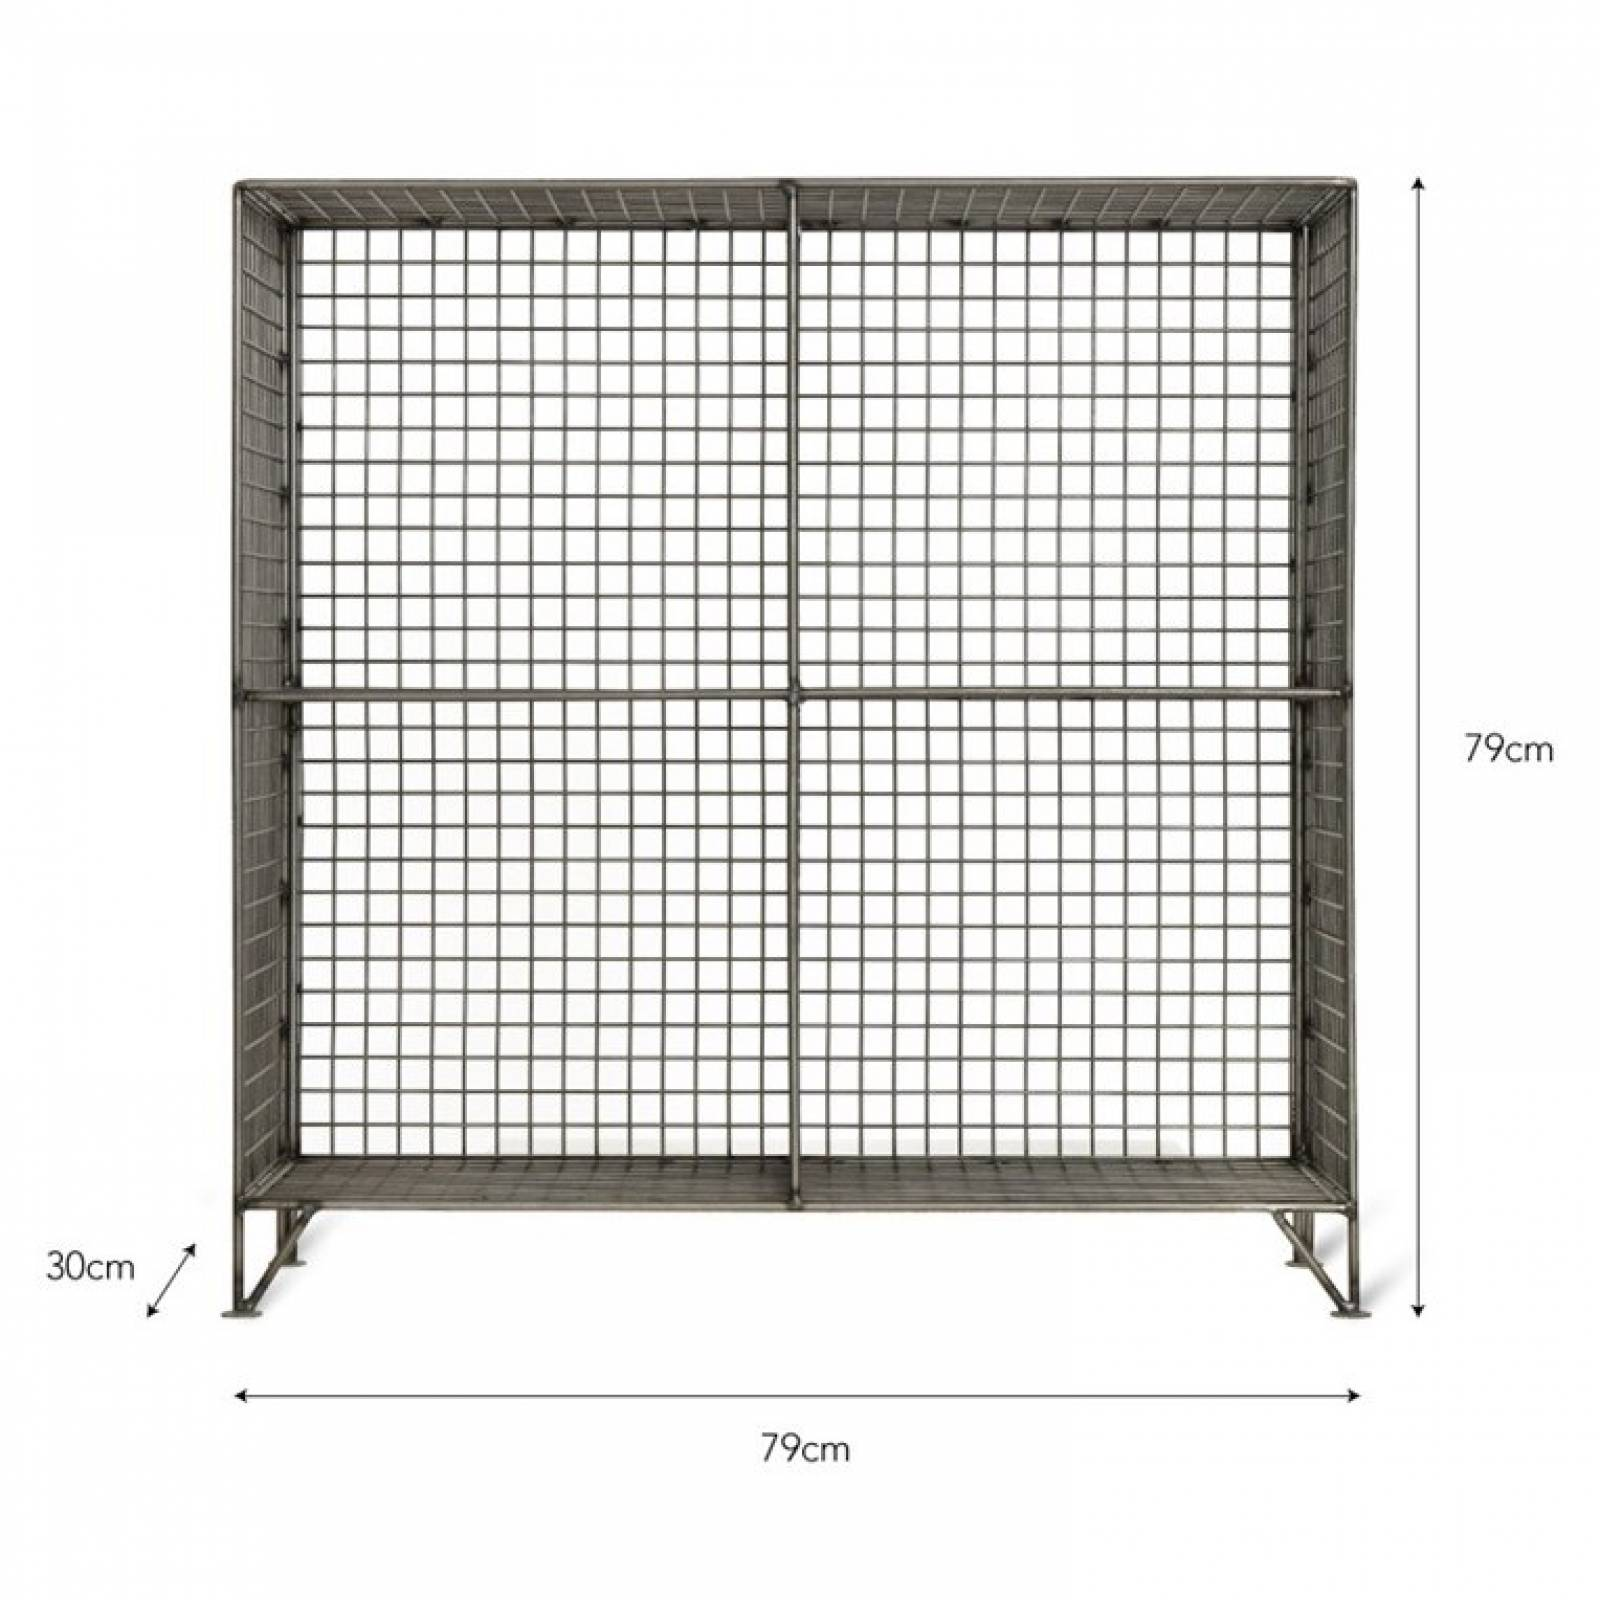 Portobello Wire Shelving Rack With 4 Holes thumbnails